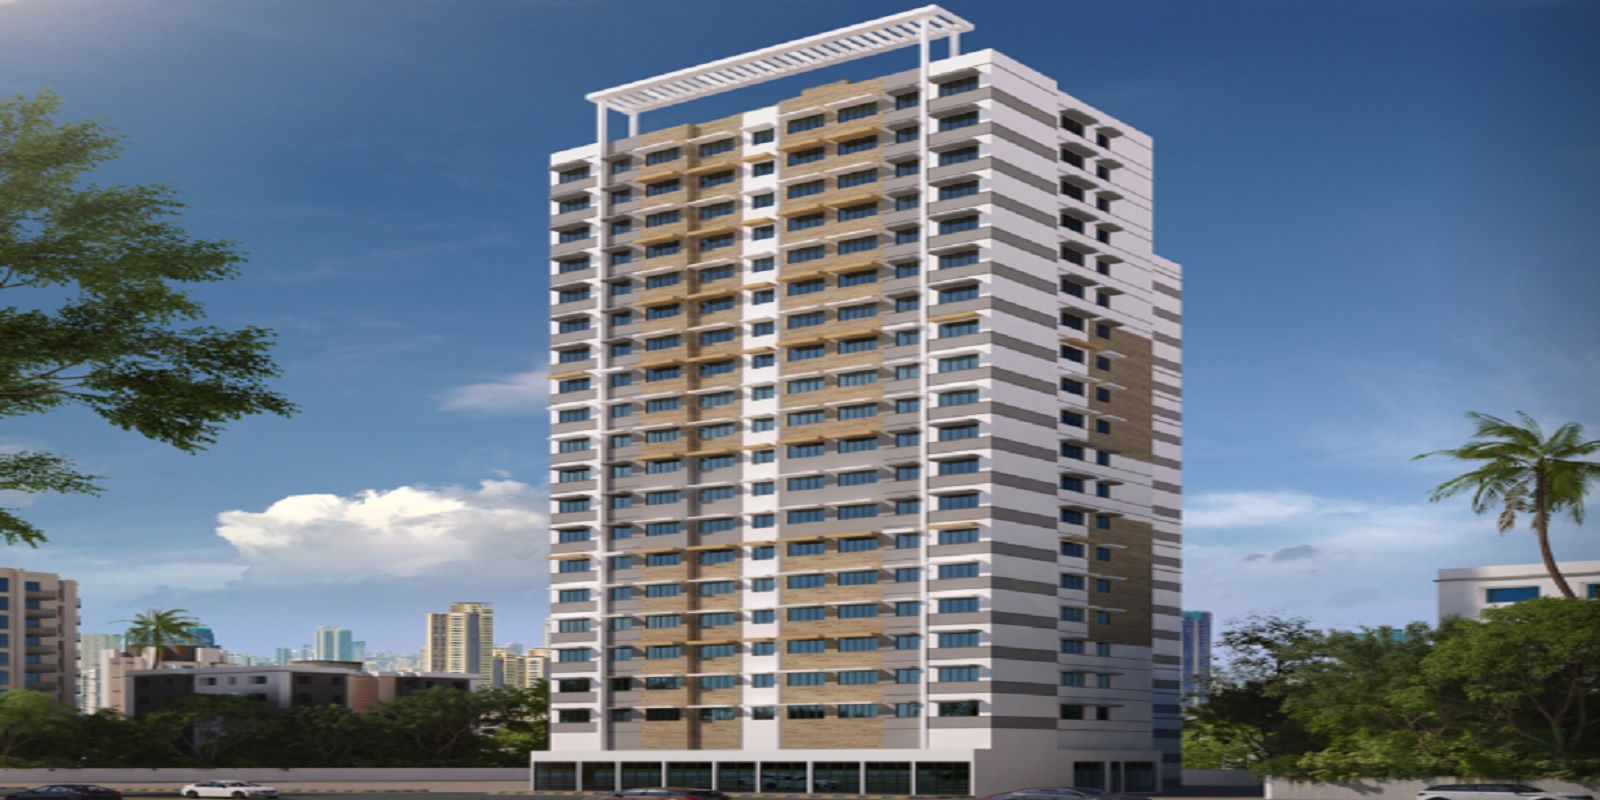 vardhman flora phase 2 project project large image1